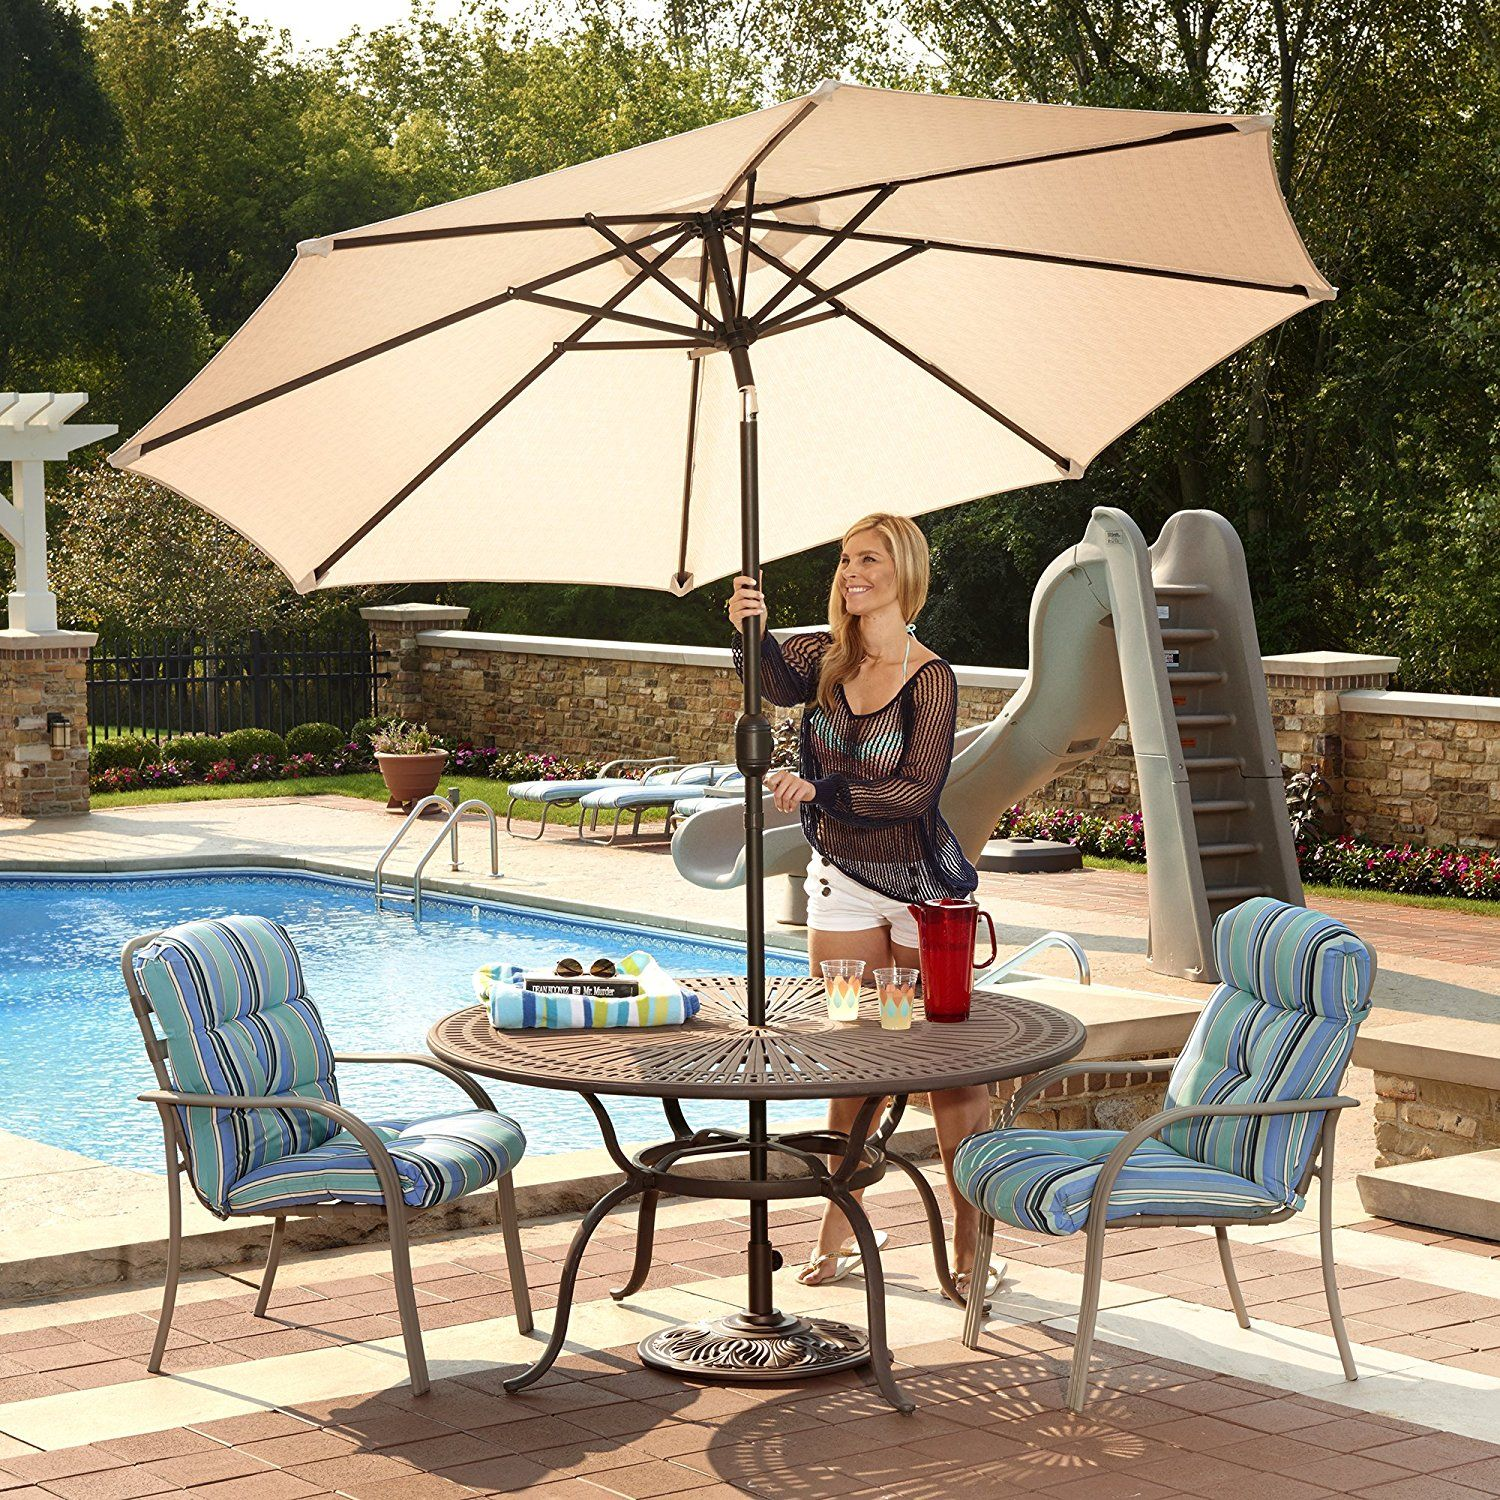 What Is The Best Patio Umbrella Fabric? We Look At Several Common Patio  Umbrella Canopy